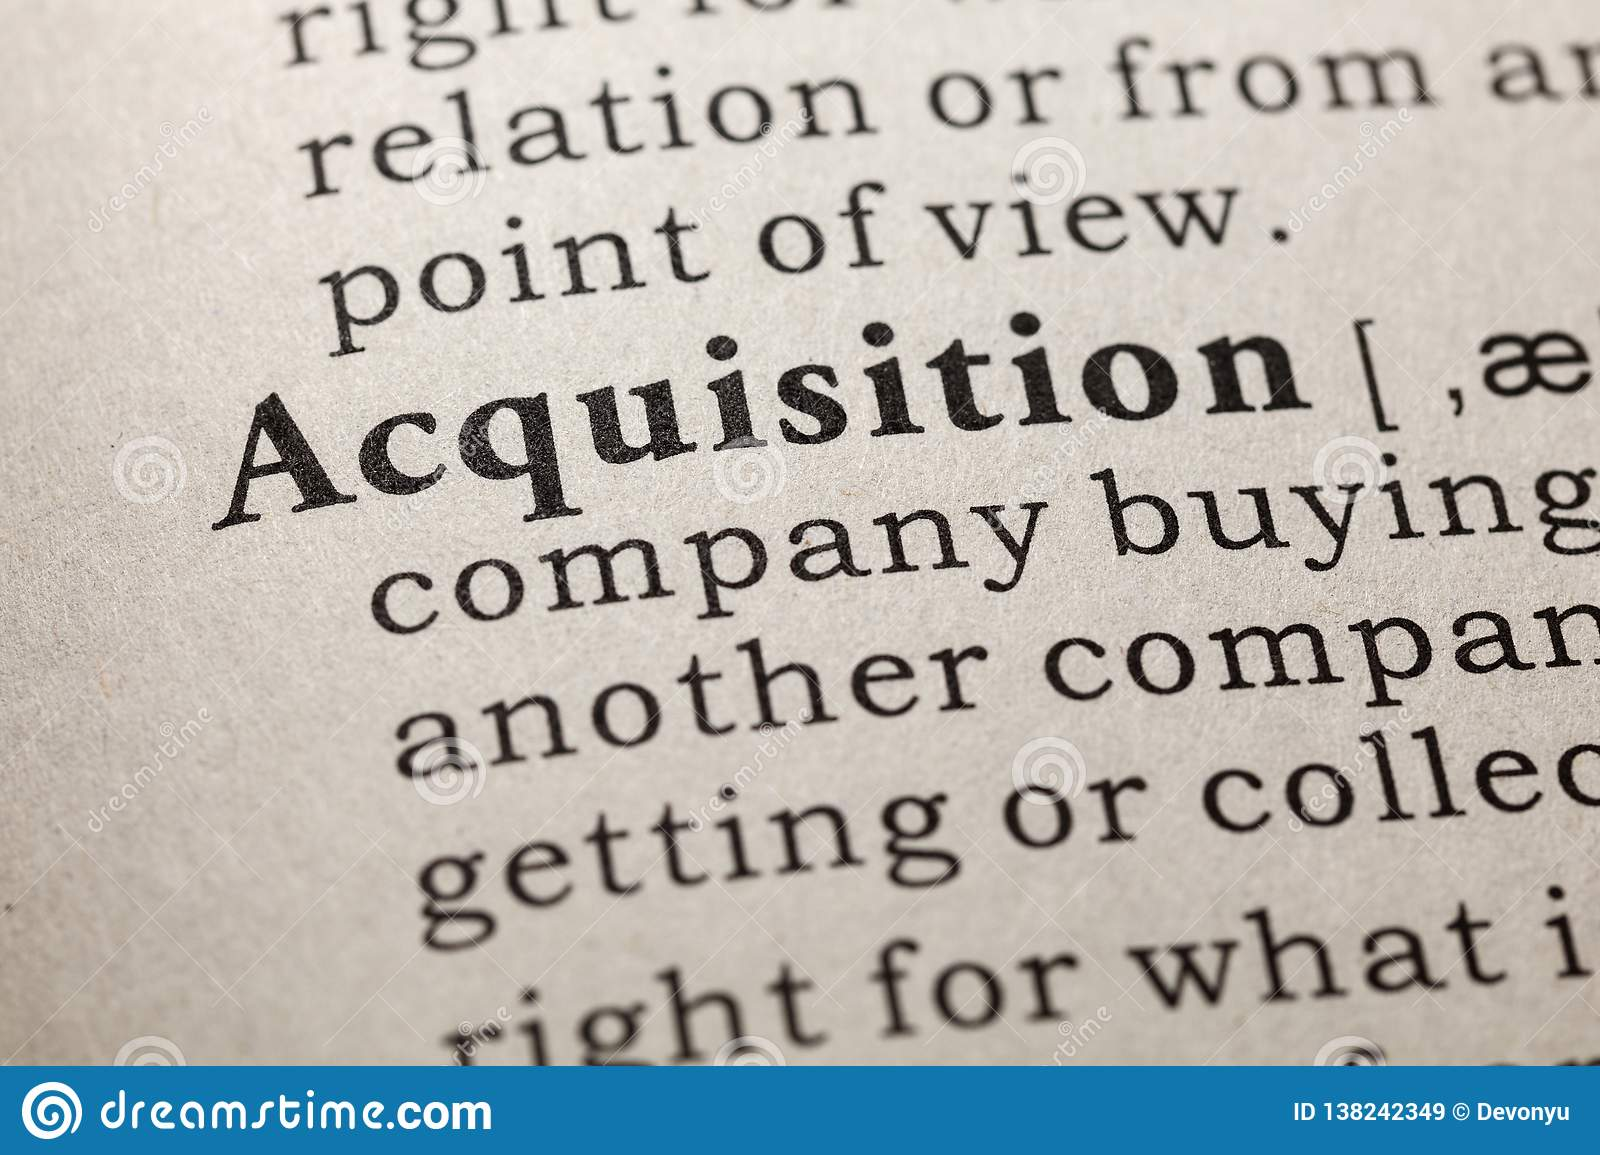 Definition of acquisition